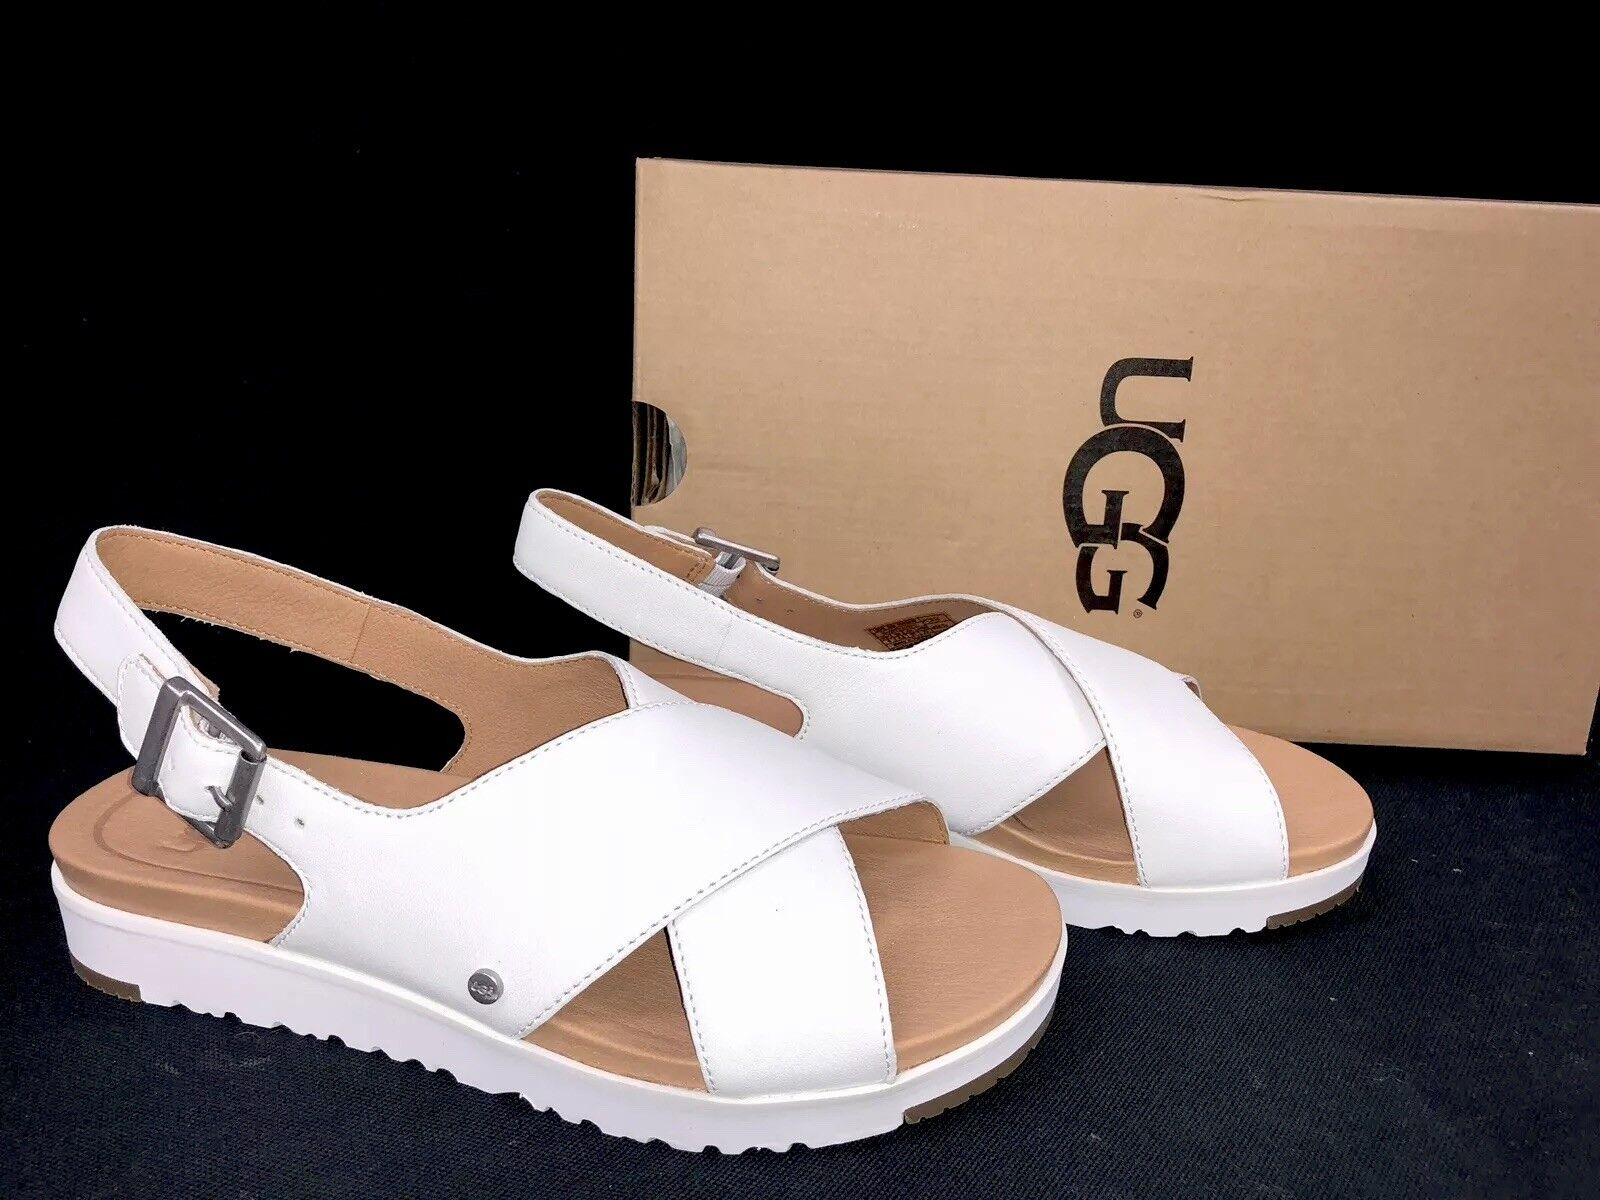 UGG Australia Women's KAMILE White Leather 1092429 Casual Strappy Sandals Shoes